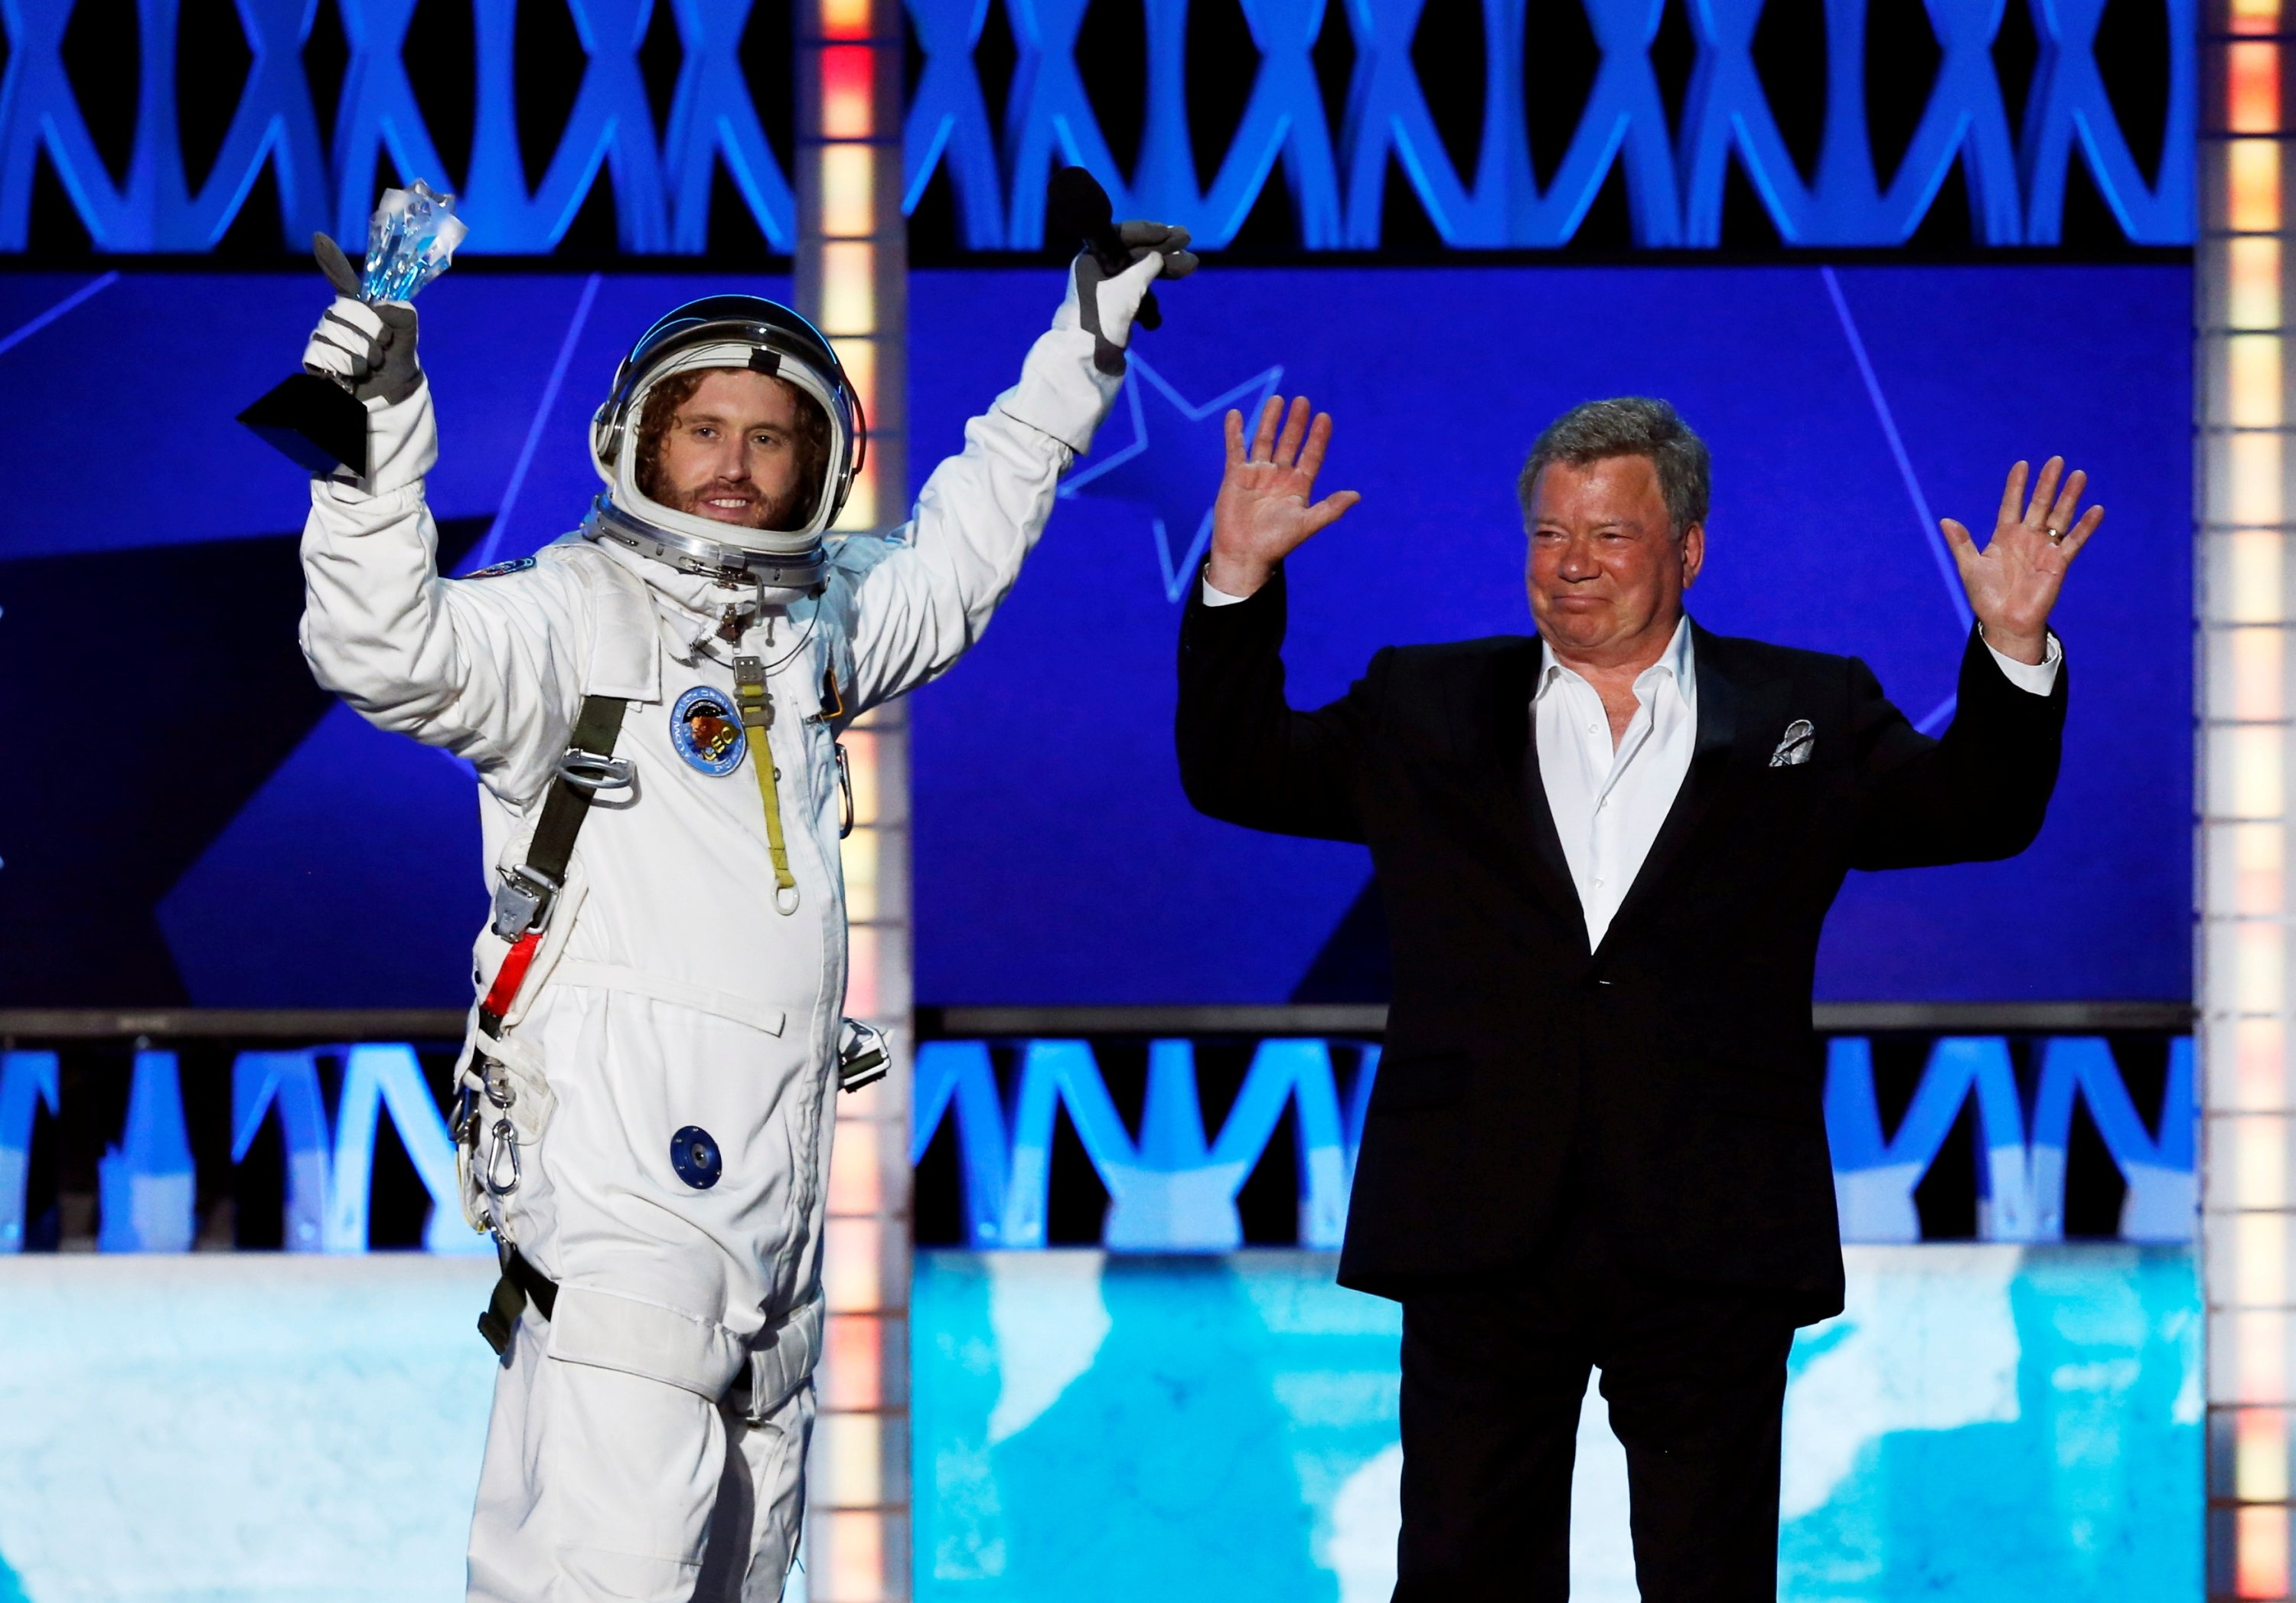 Hosts T.J. Miller (L) and William Shatner close the show during the 21st Annual Critics' Choice Awards in Santa Monica, California, Jan. 17, 2016.  (Reuters File Photo)